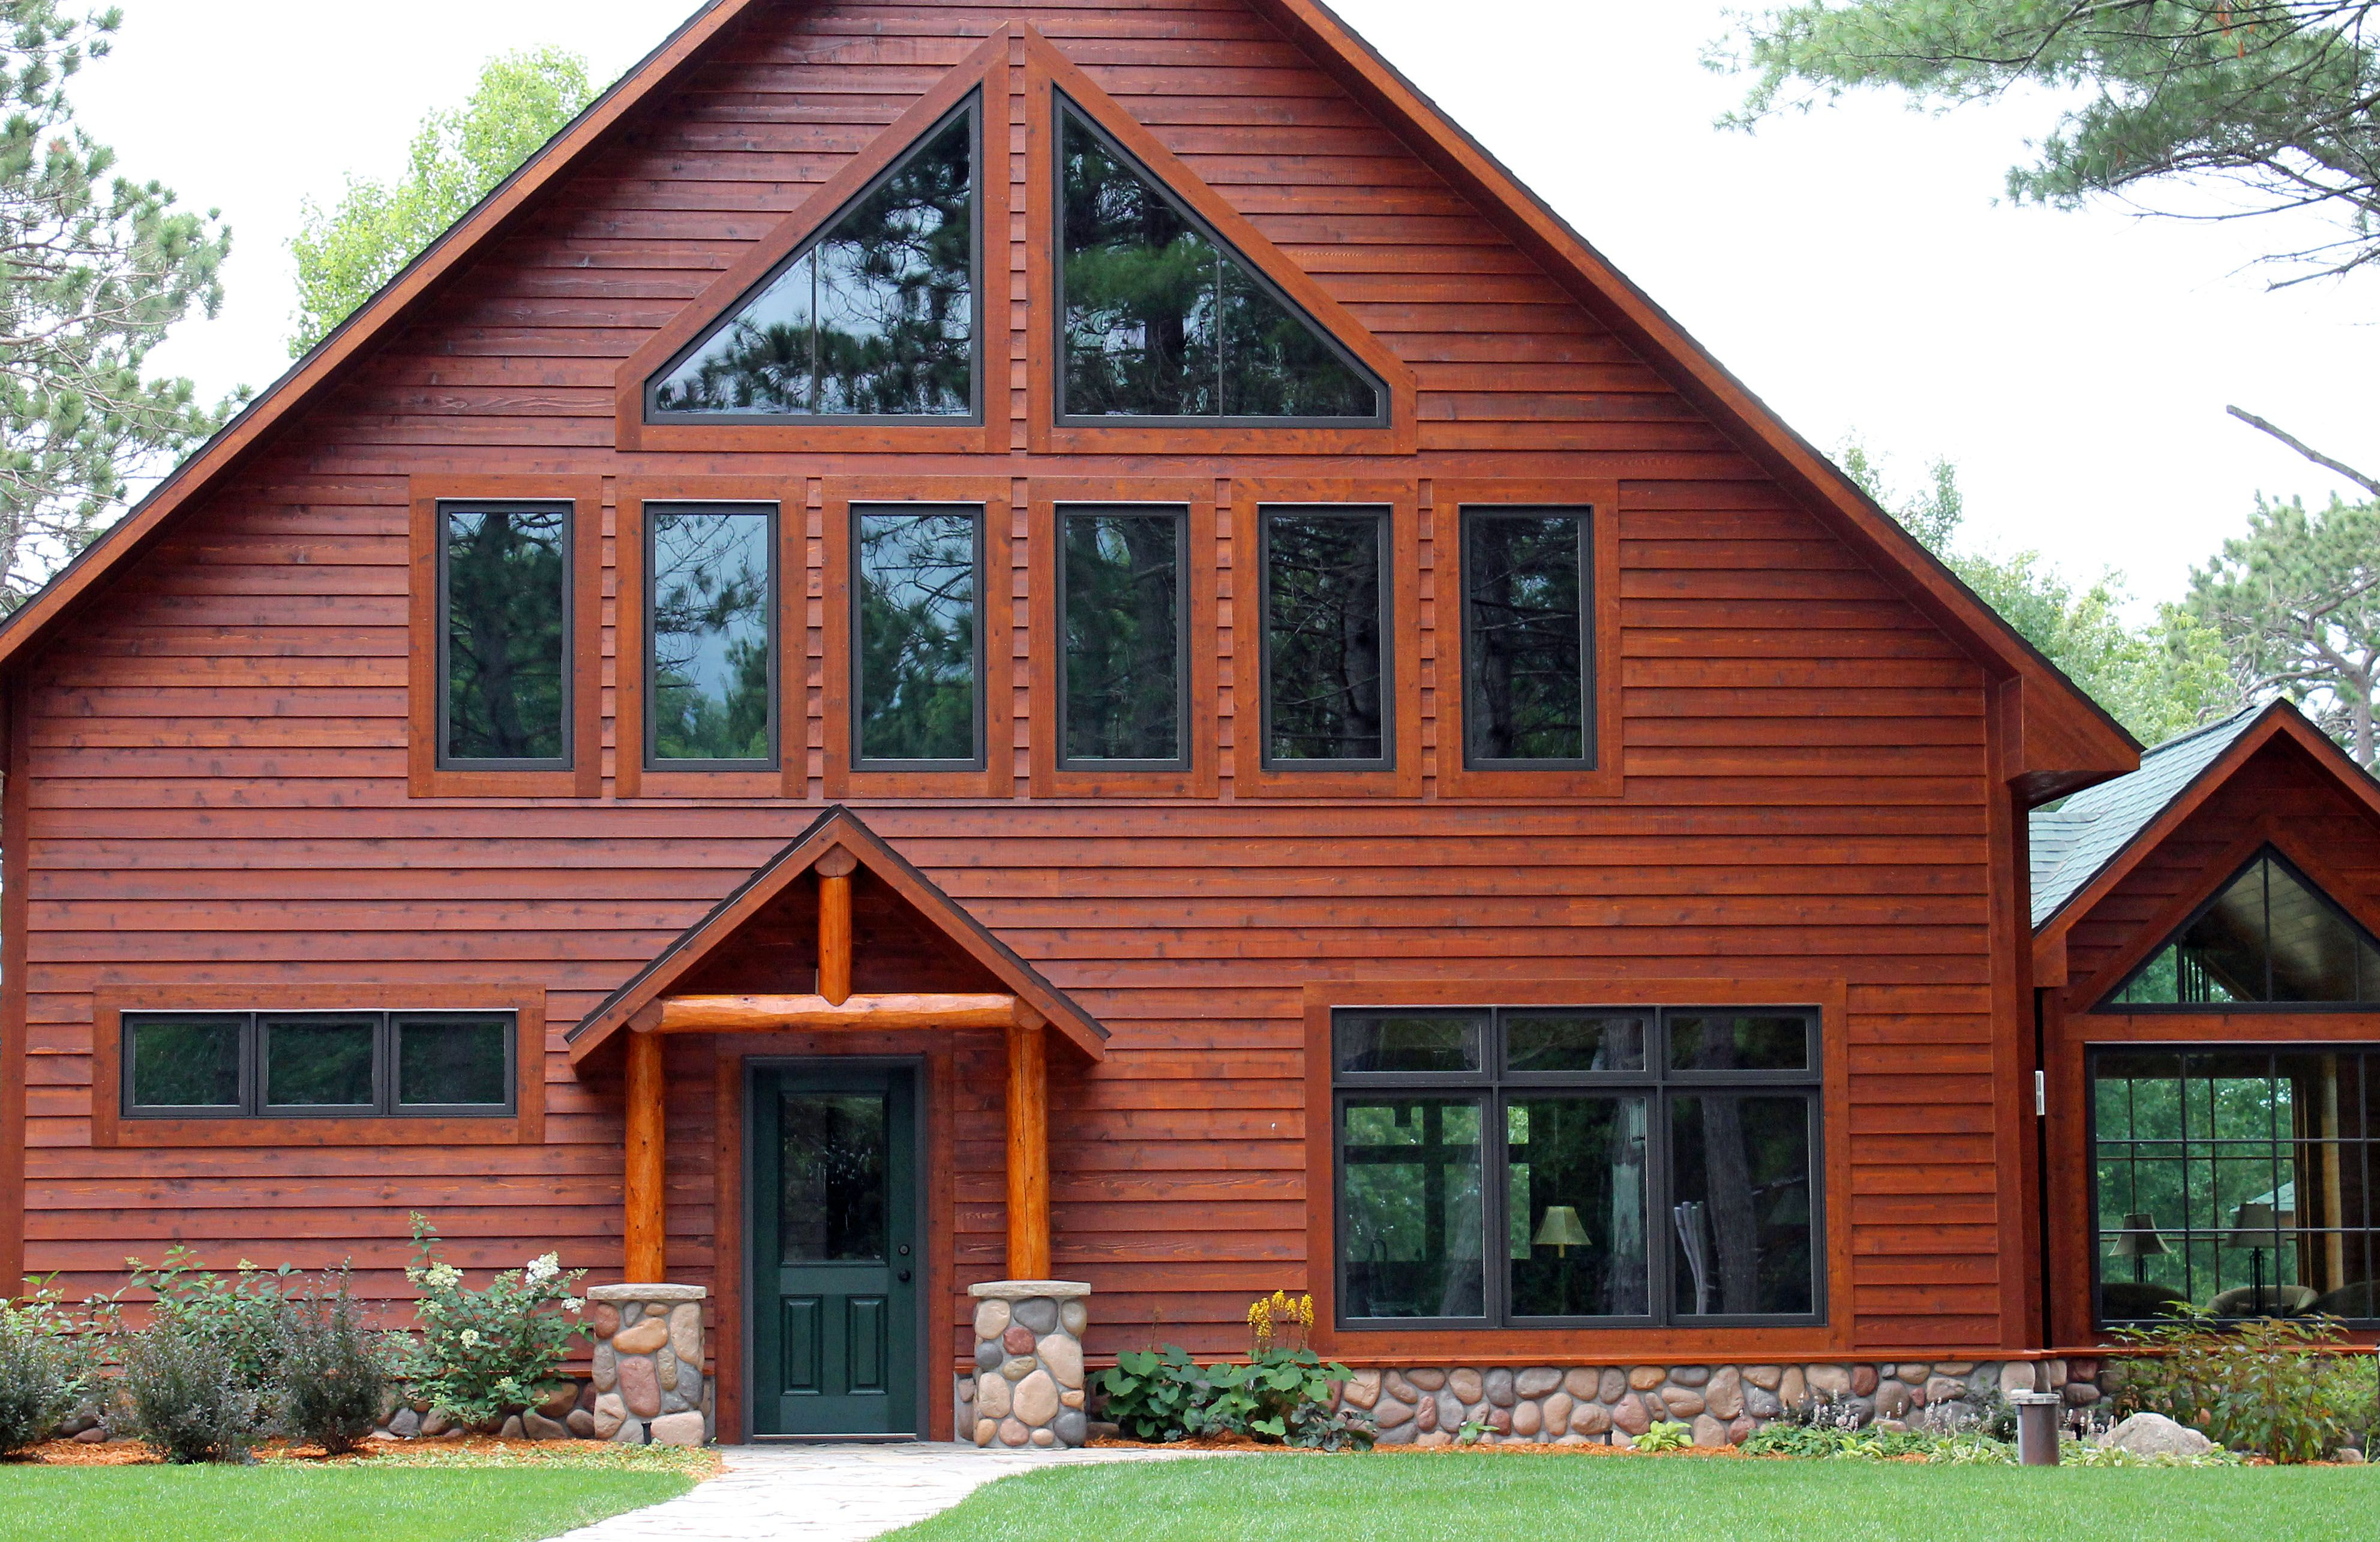 5 4 8 Tight Knot Cedar Rabbeted Bevel Sikkens 077 Cedar 085 Teak Wood Siding Bevel Exterior Colors